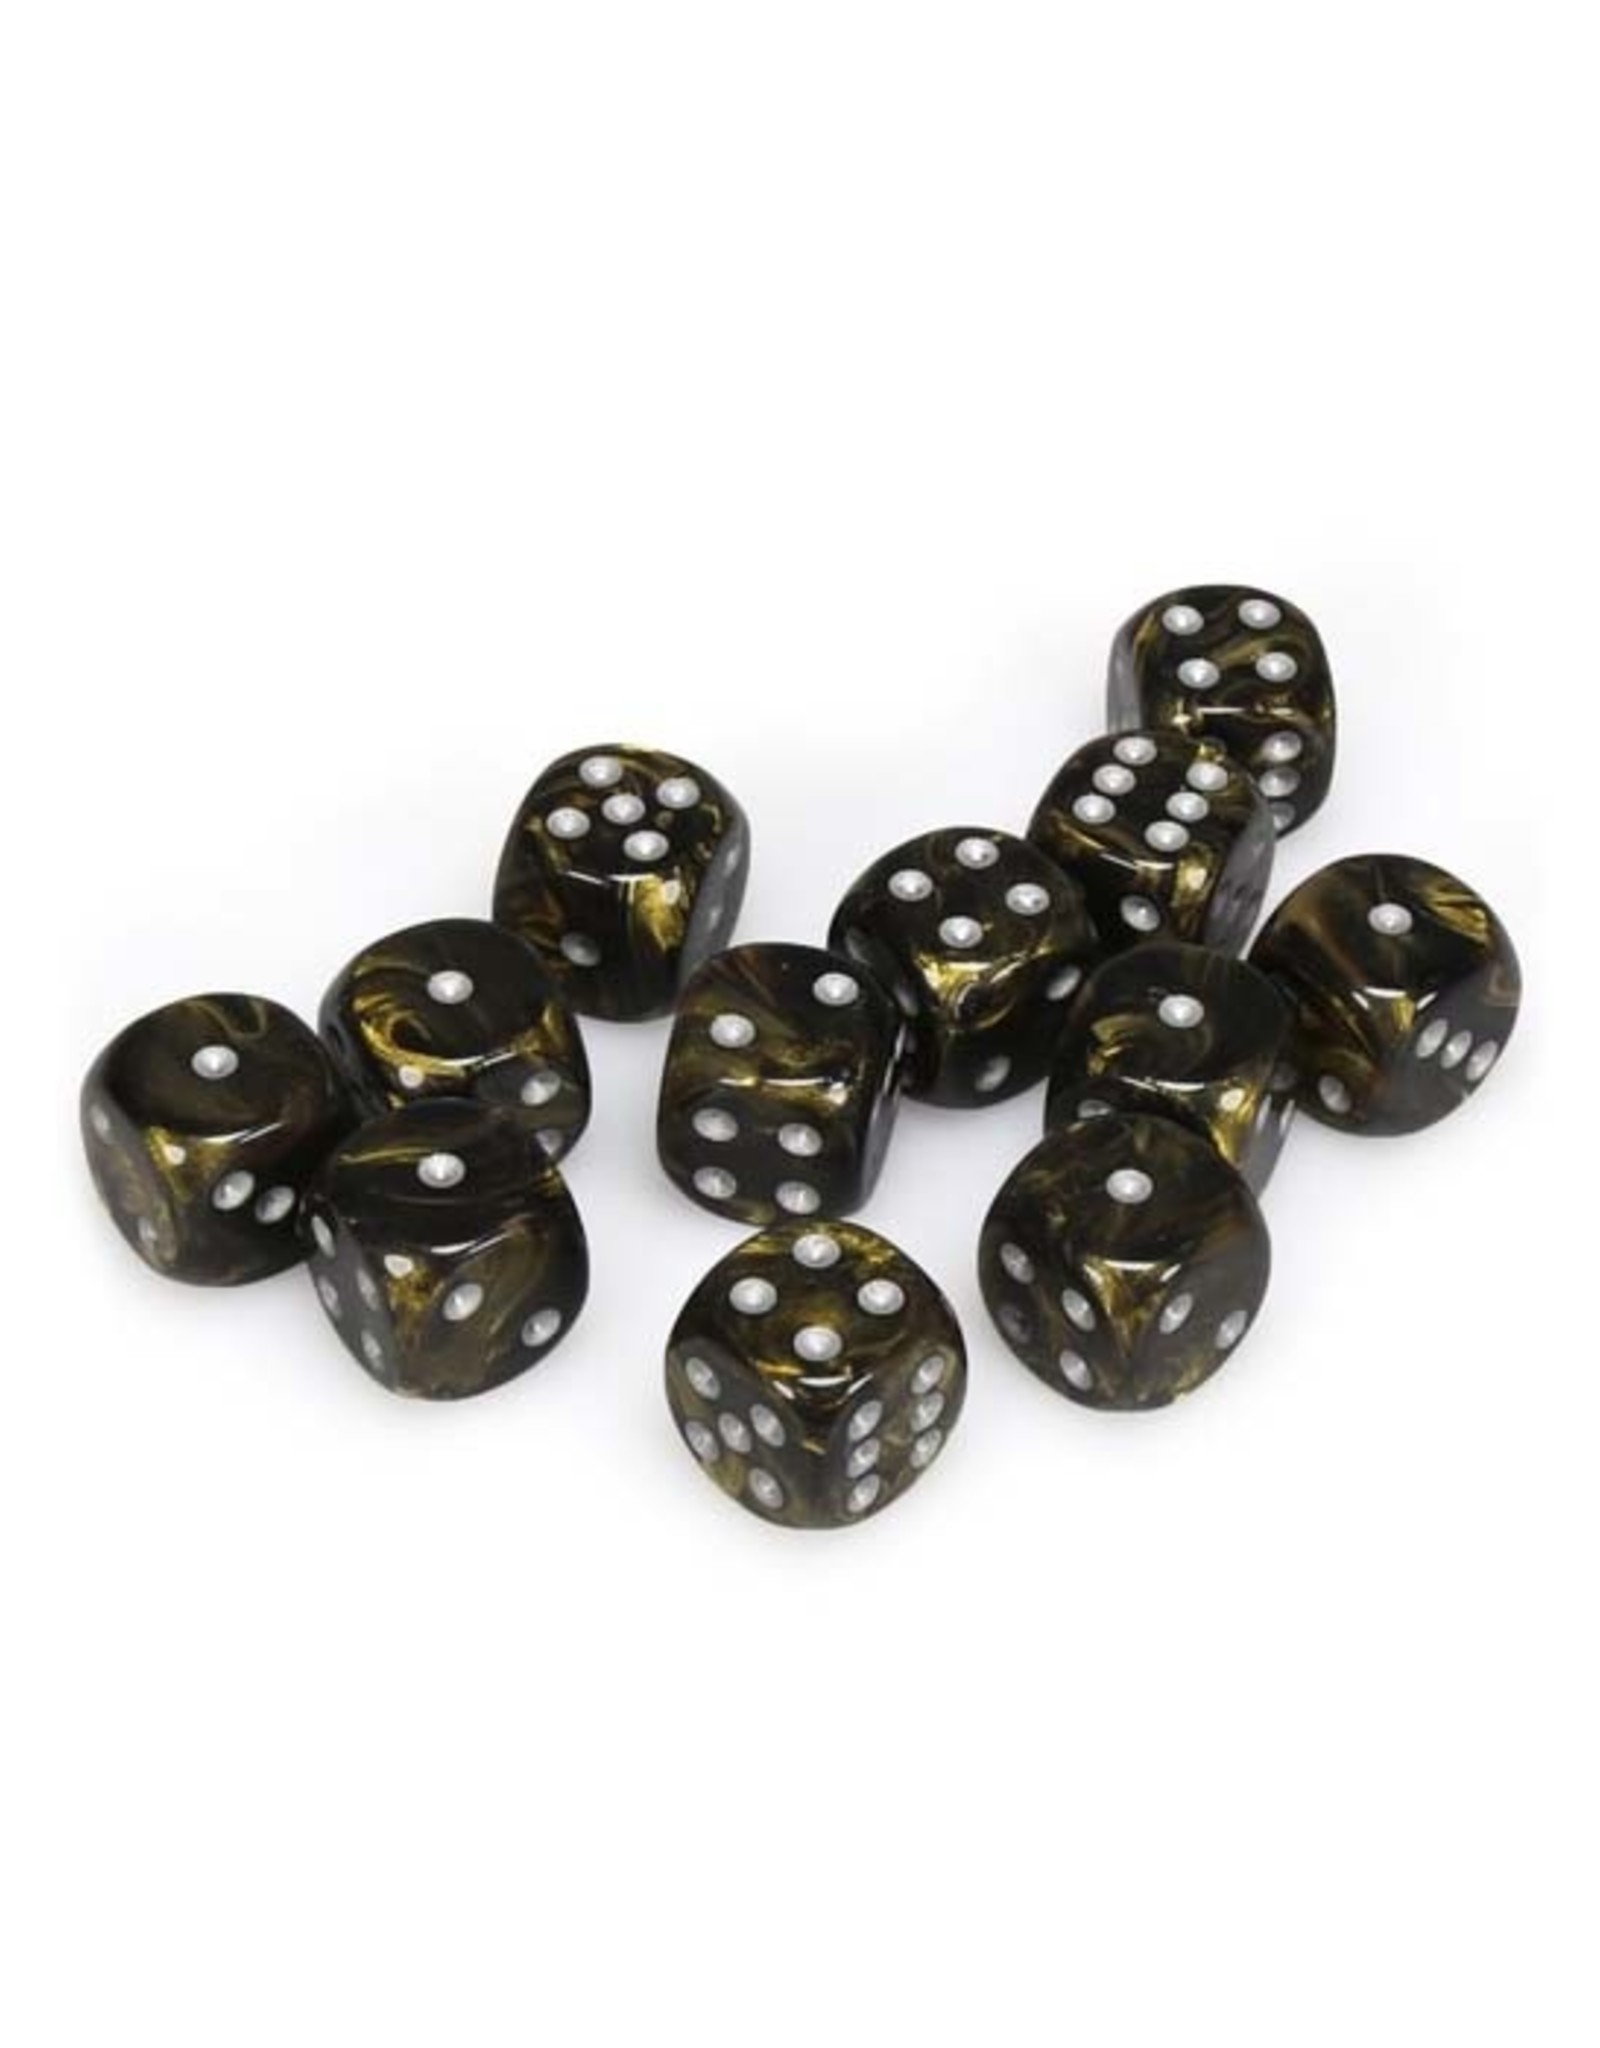 Chessex Chessex: 16mm D6 - Leaf - Black-Gold w/ Silver